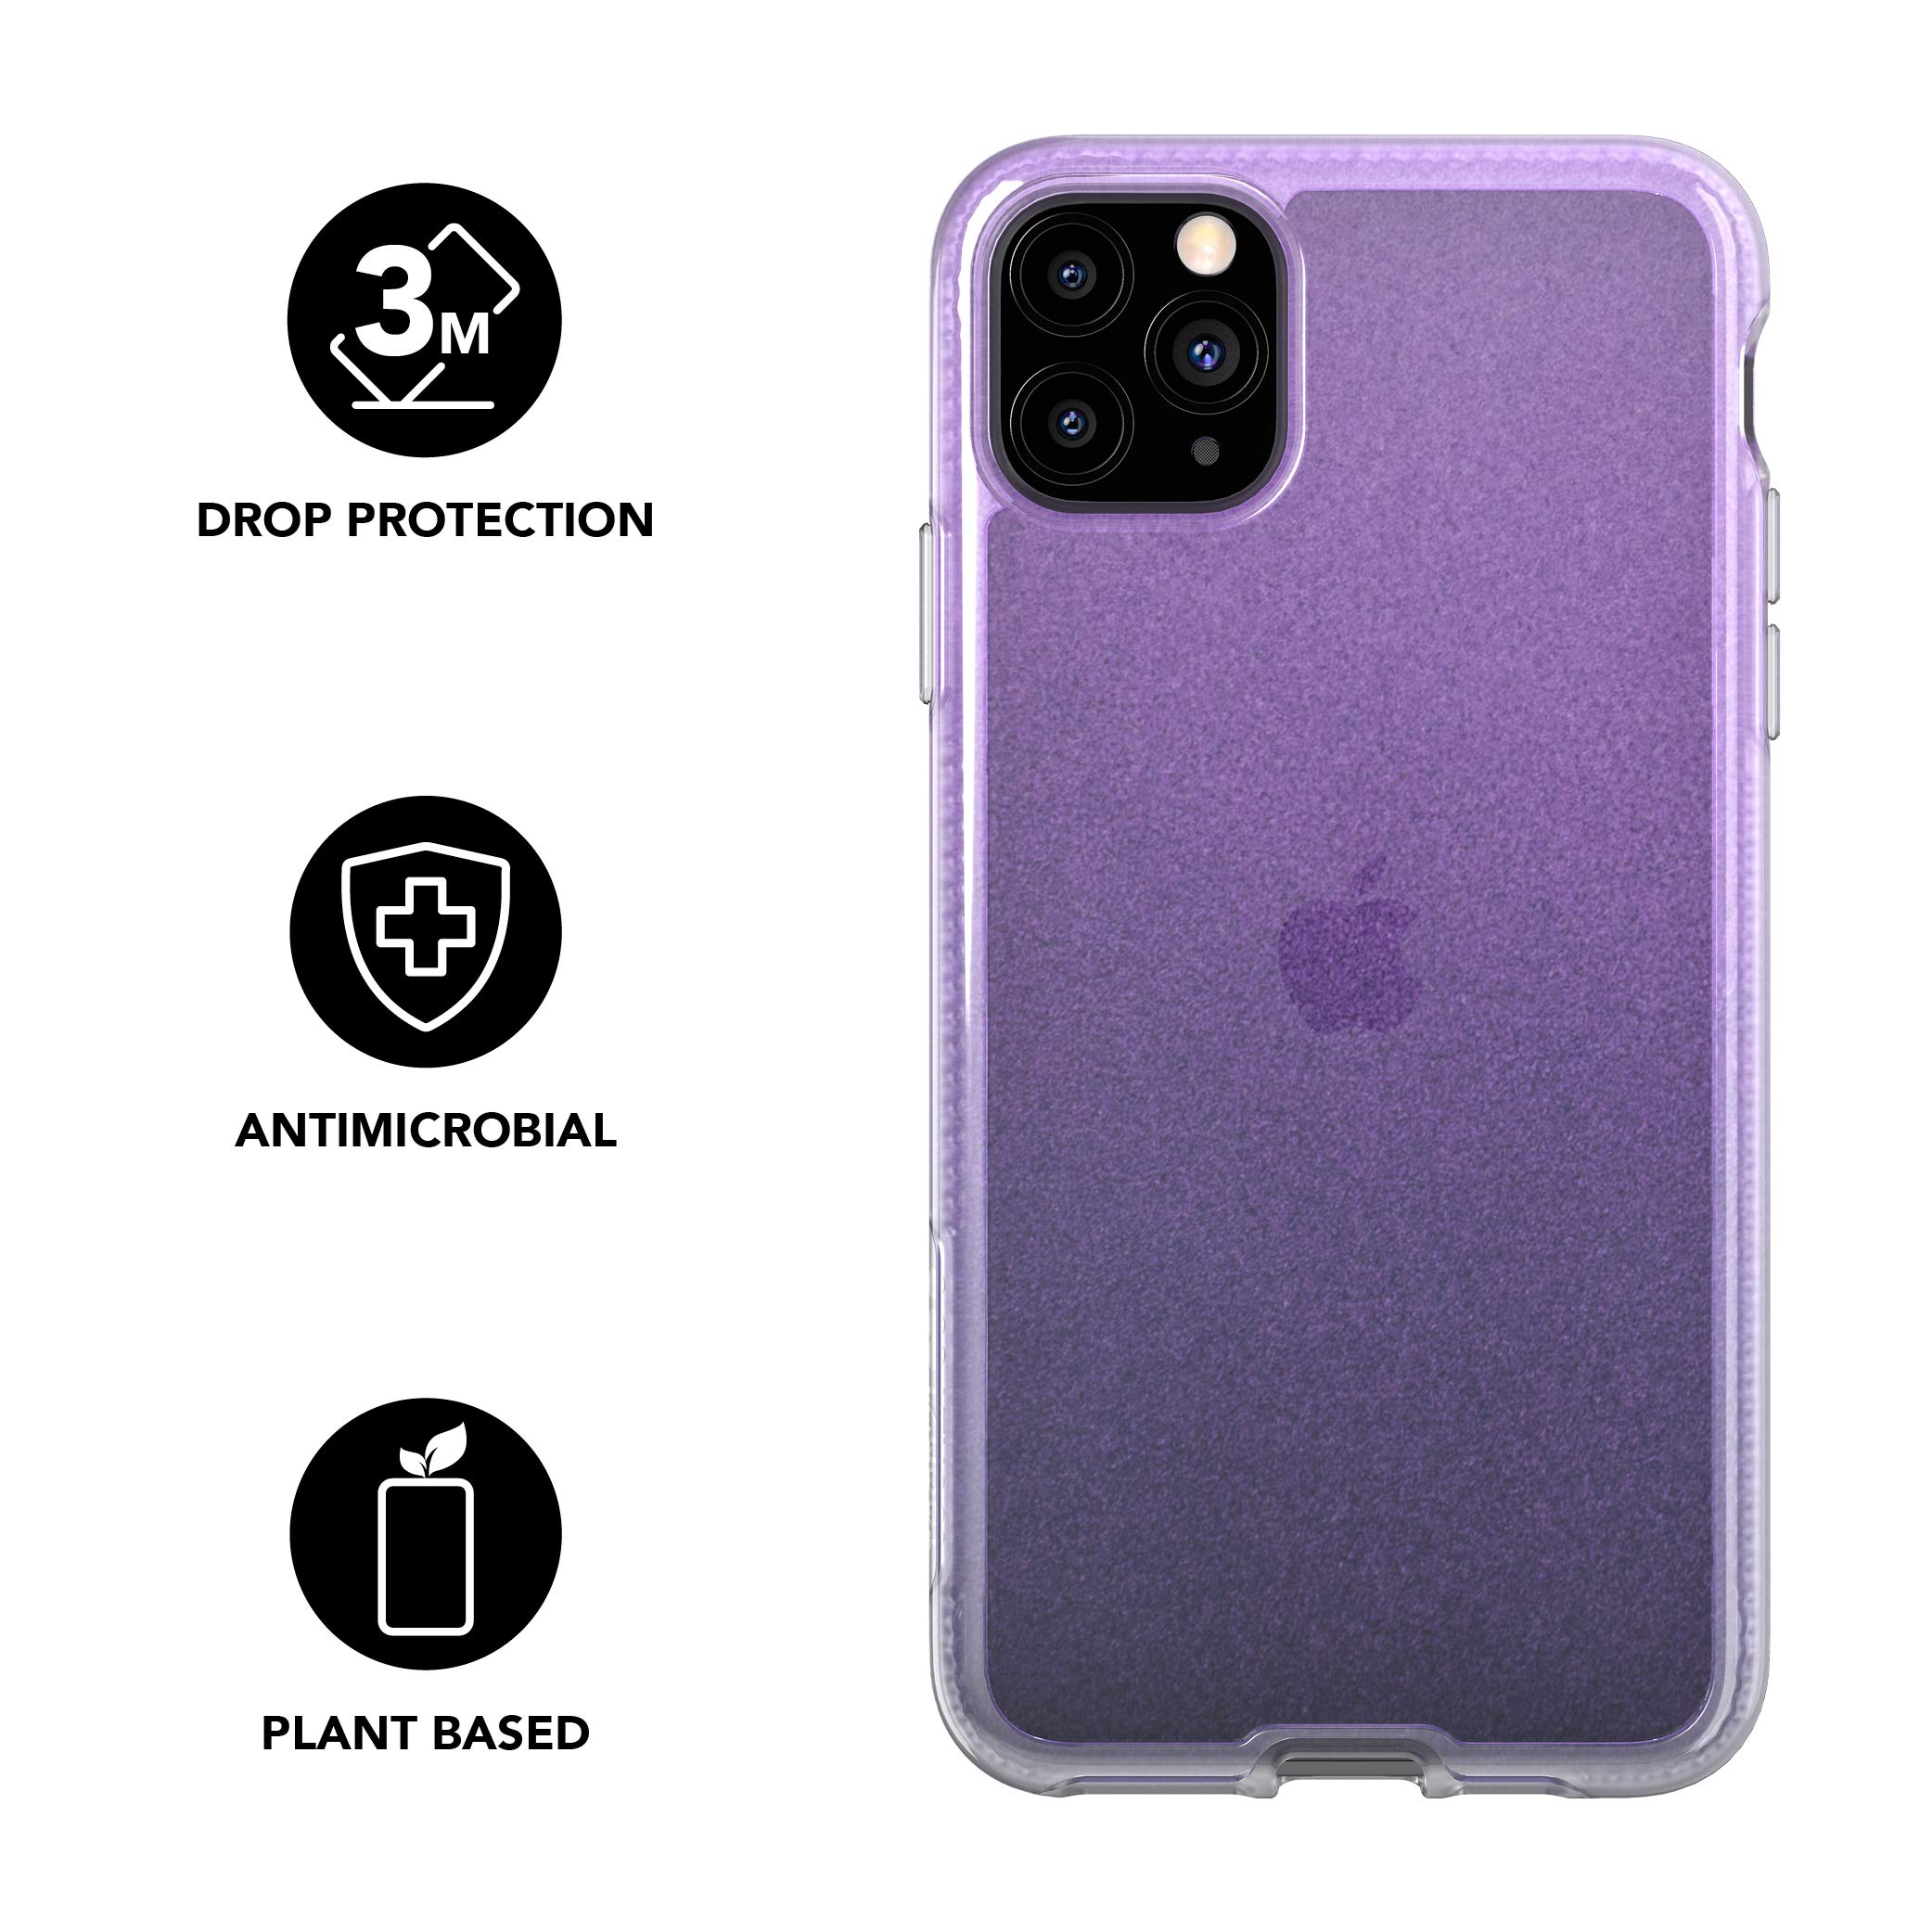 tech21 Pure Shimmer Mobile Phone Case - Compatible with iPhone 11 Pro Max - Ultra Thin, Shimmer Effect with Anti-Microbial Properties and Drop Protection, Pink